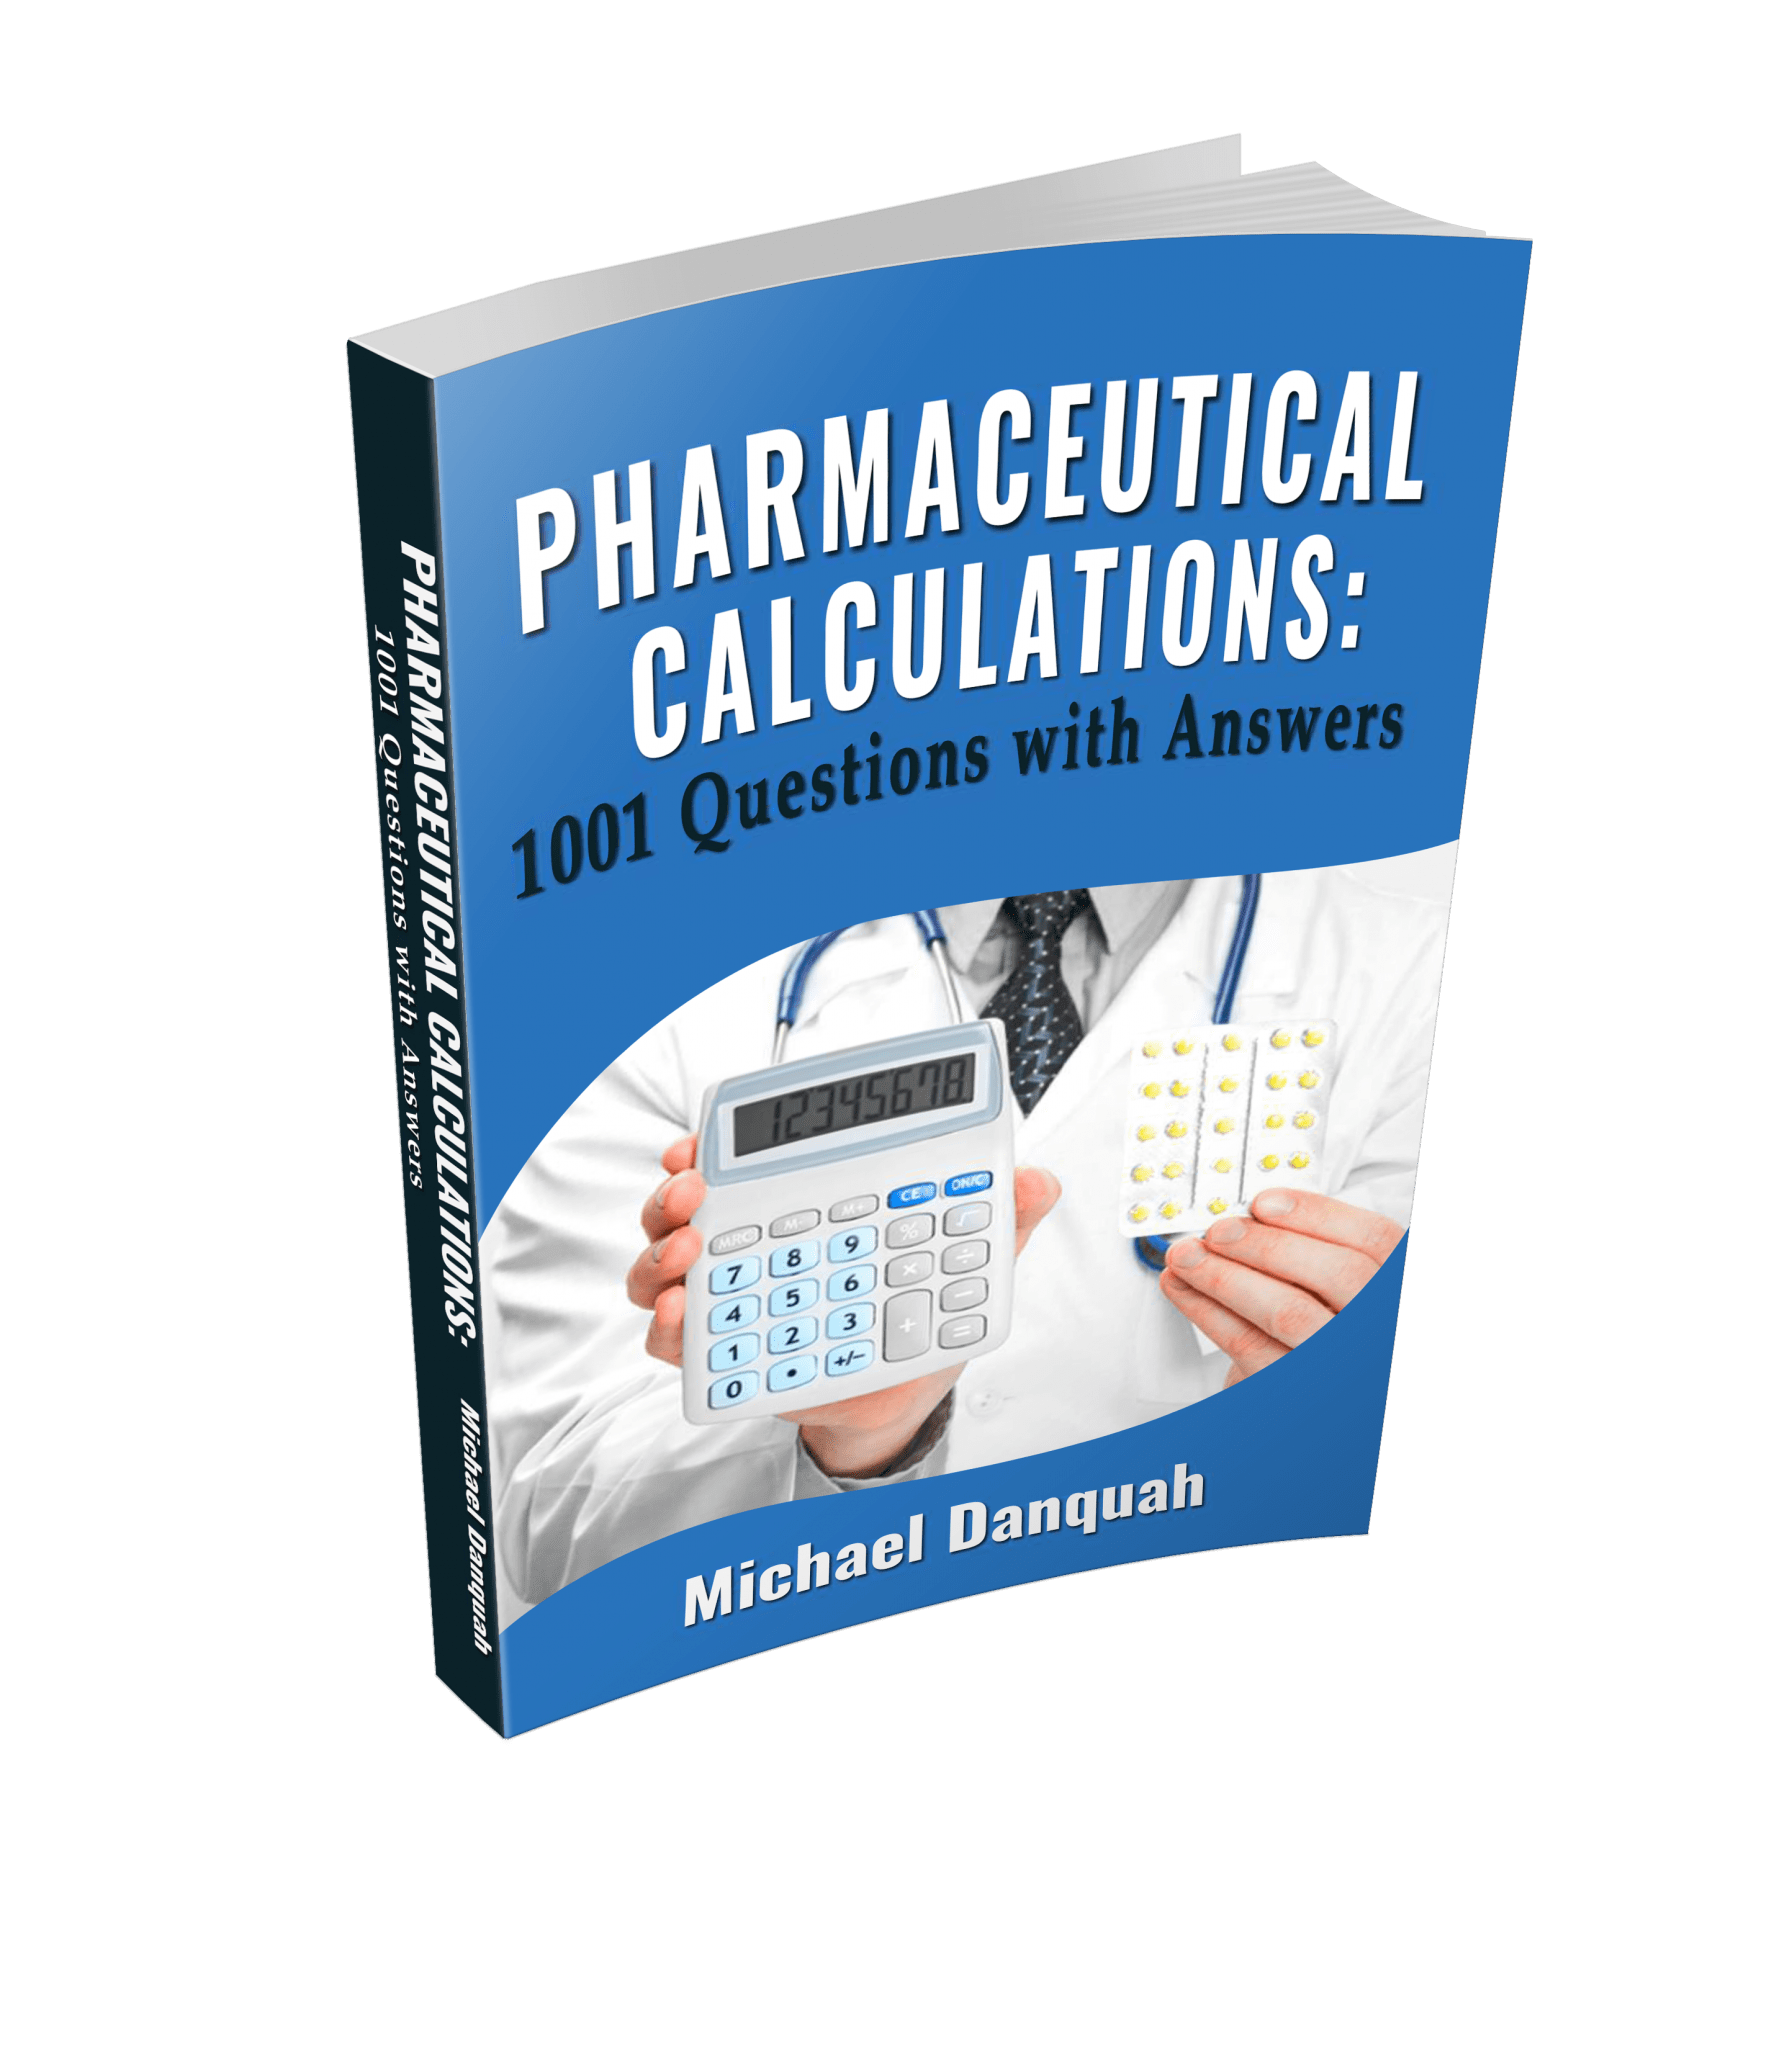 Pharmaceutical Calculations Questions With Answers